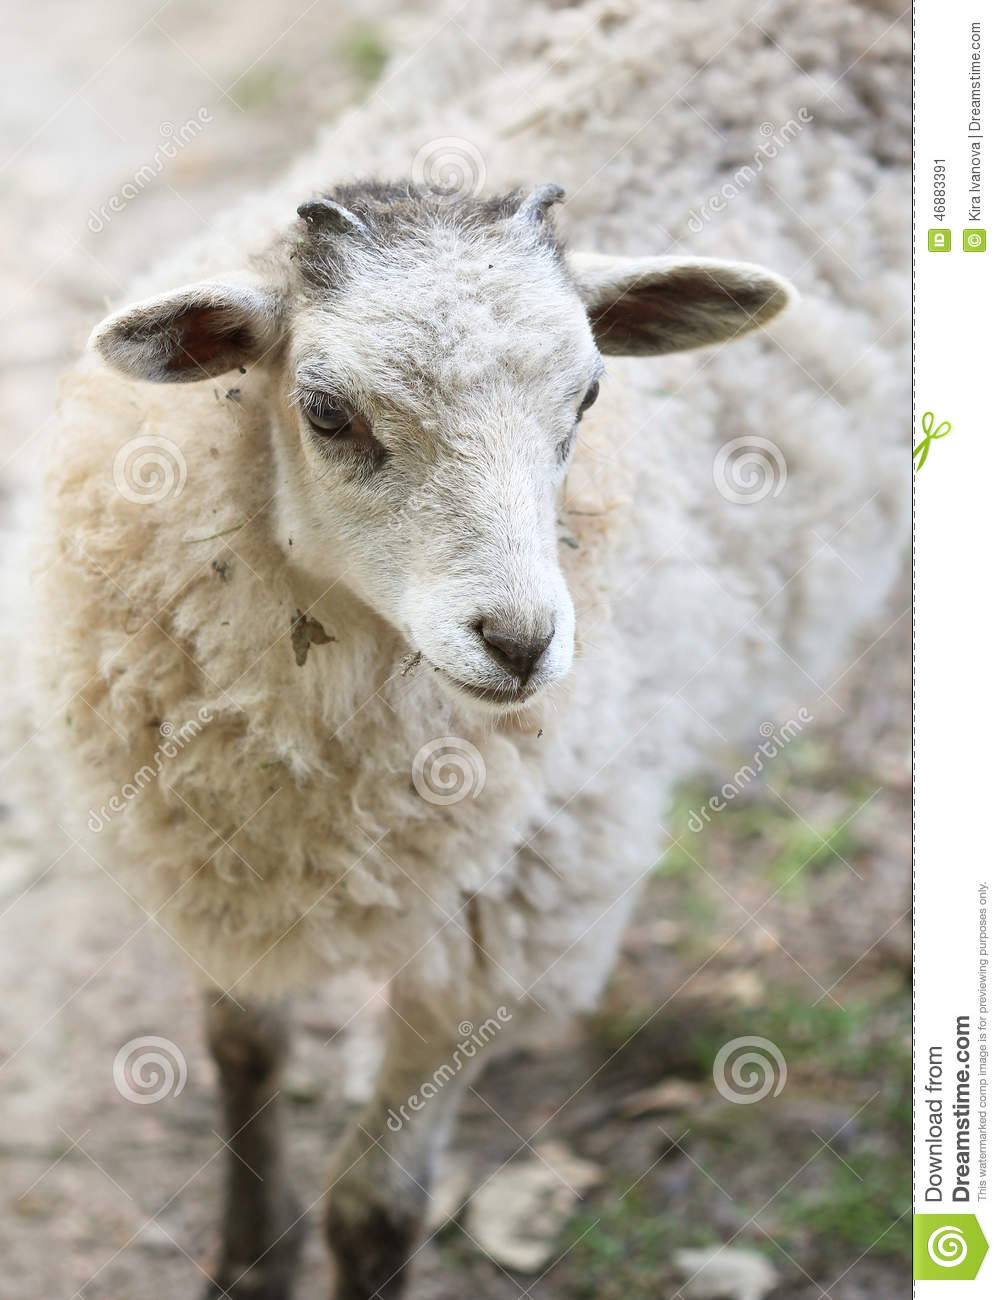 White Fluffy Baby Sheep Close Up Portrait Stock Photo ...